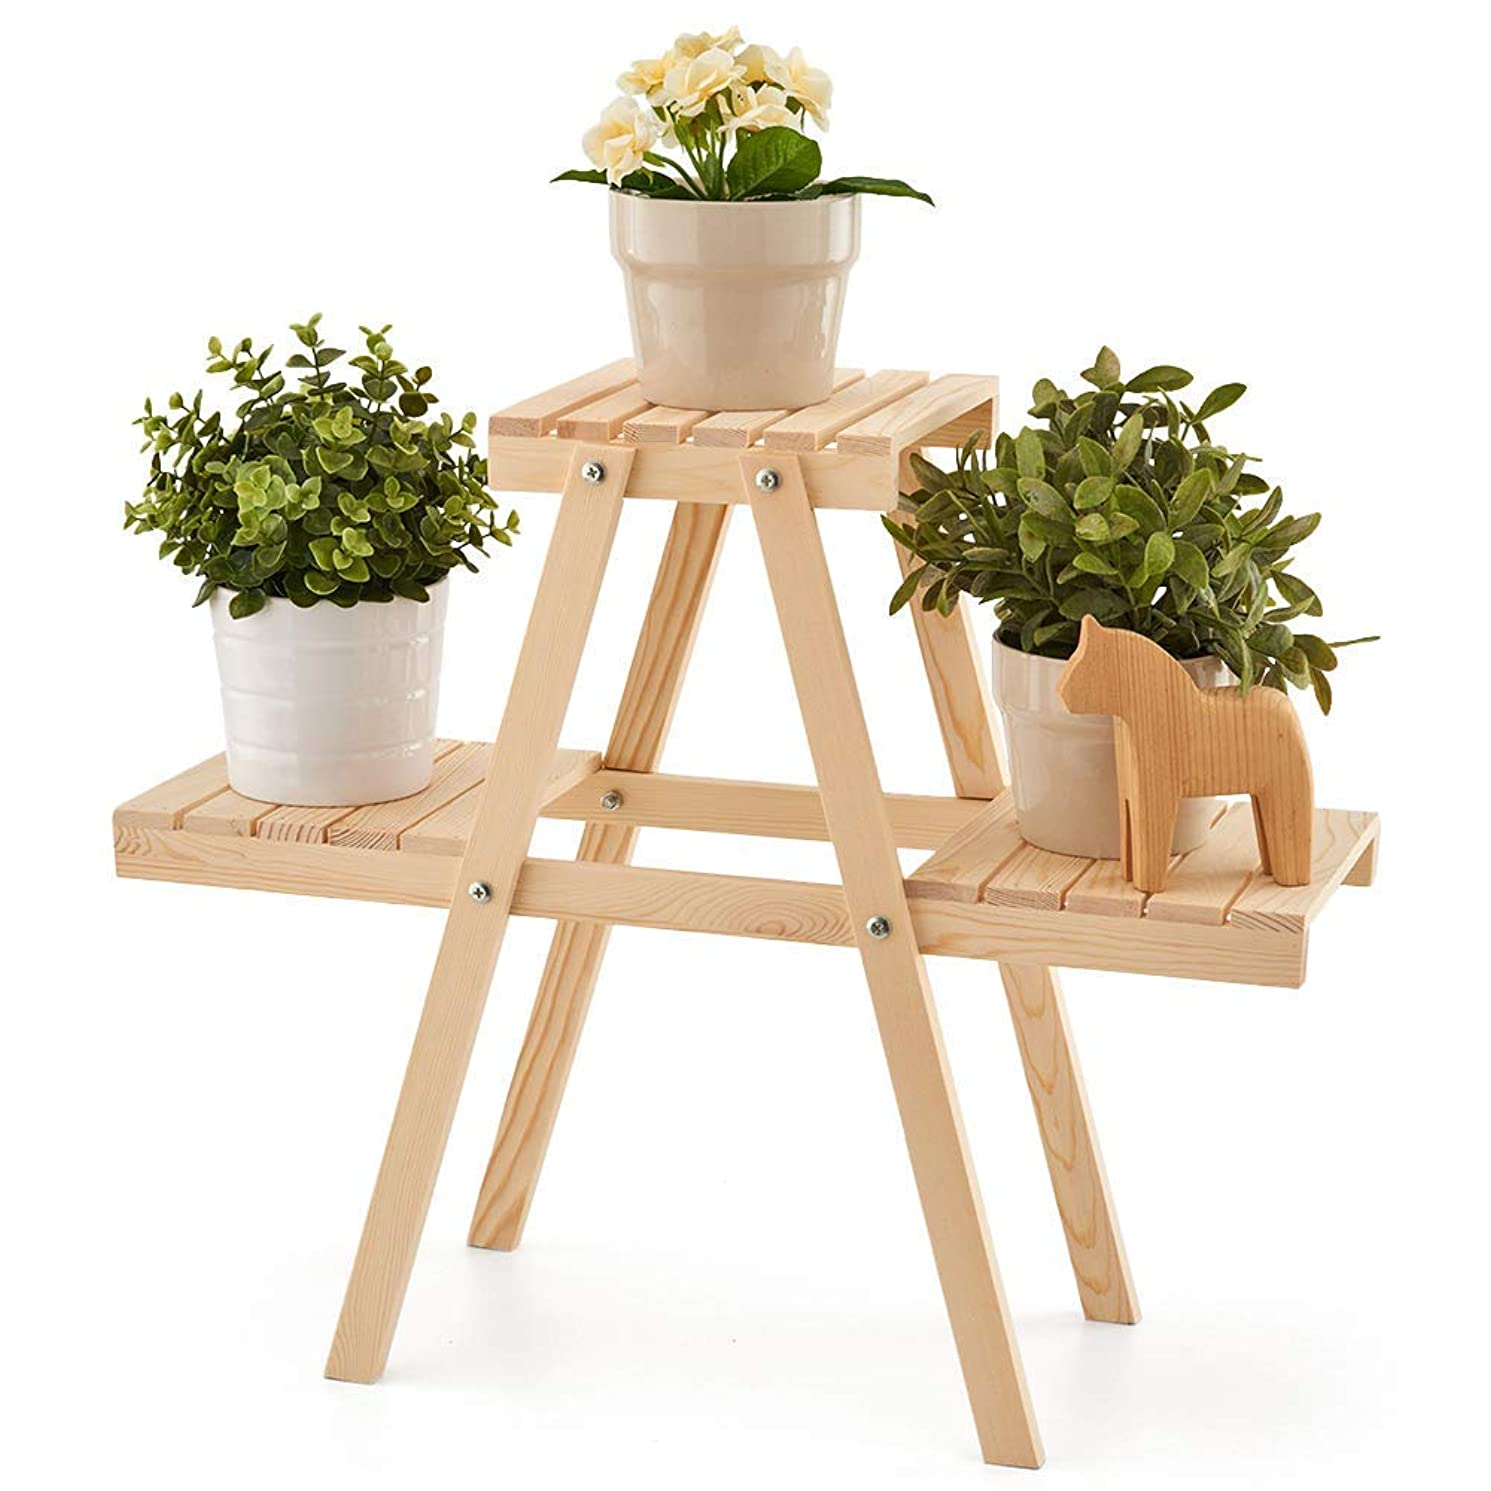 EZOWare Plant Rack, Wood Stepping Style Flower Leaves Pot 3 Shelves Stand for Indoor Outdoor Garden Greenhouse